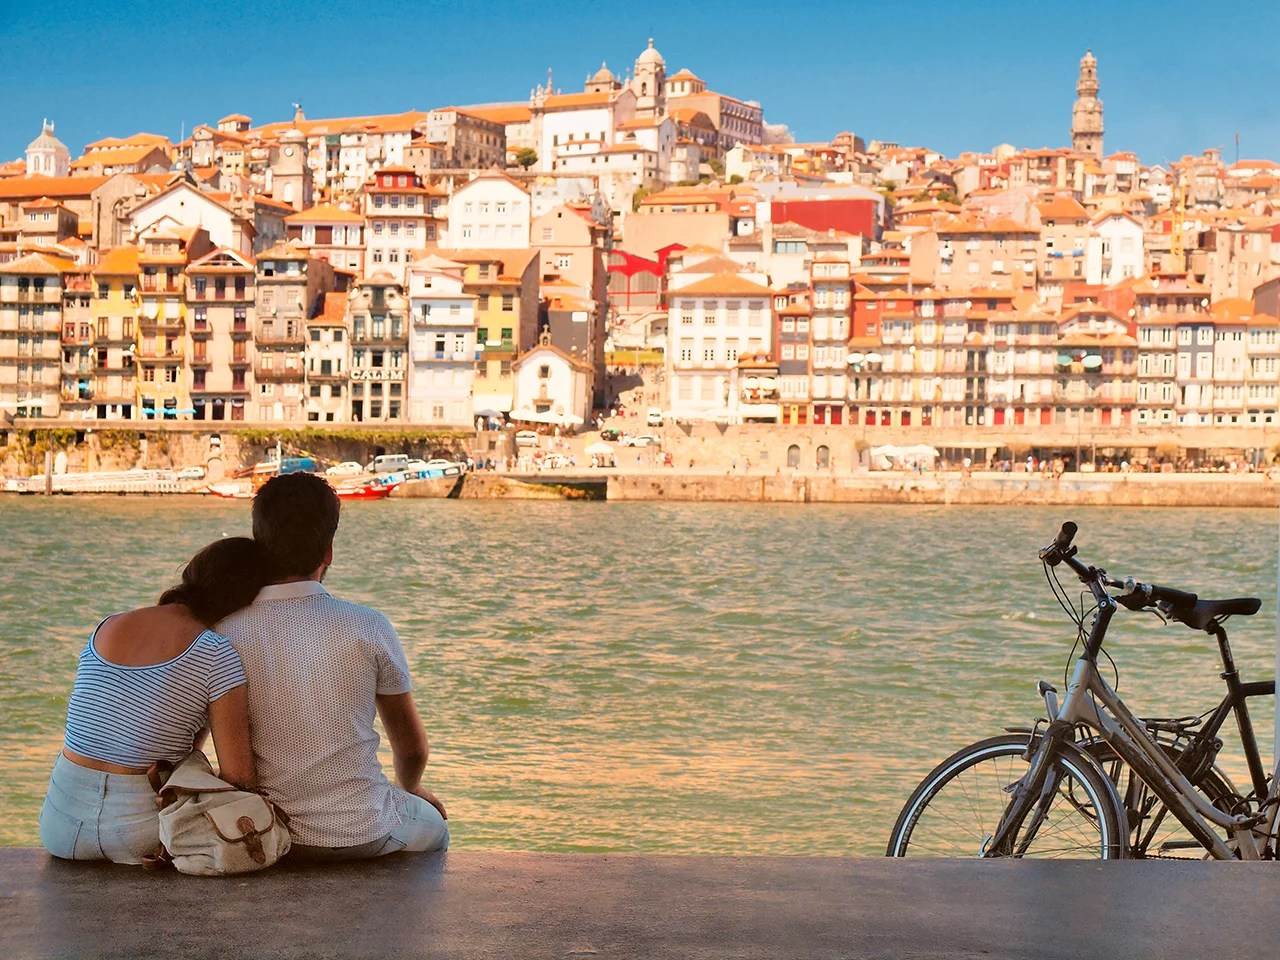 Portugal, Porto, Ribeira do Douro. (Photo by Alberto Manuel Urosa Toledano - Getty Images)Some houses in the area of the Ribeira do Douro or Riverside of Douro river from a pier. Located along the Douro river estuary in Northern Portugal, Porto is one of the oldest European centres, and its historical core was proclaimed a World Heritage Site by UNESCO in 1996.